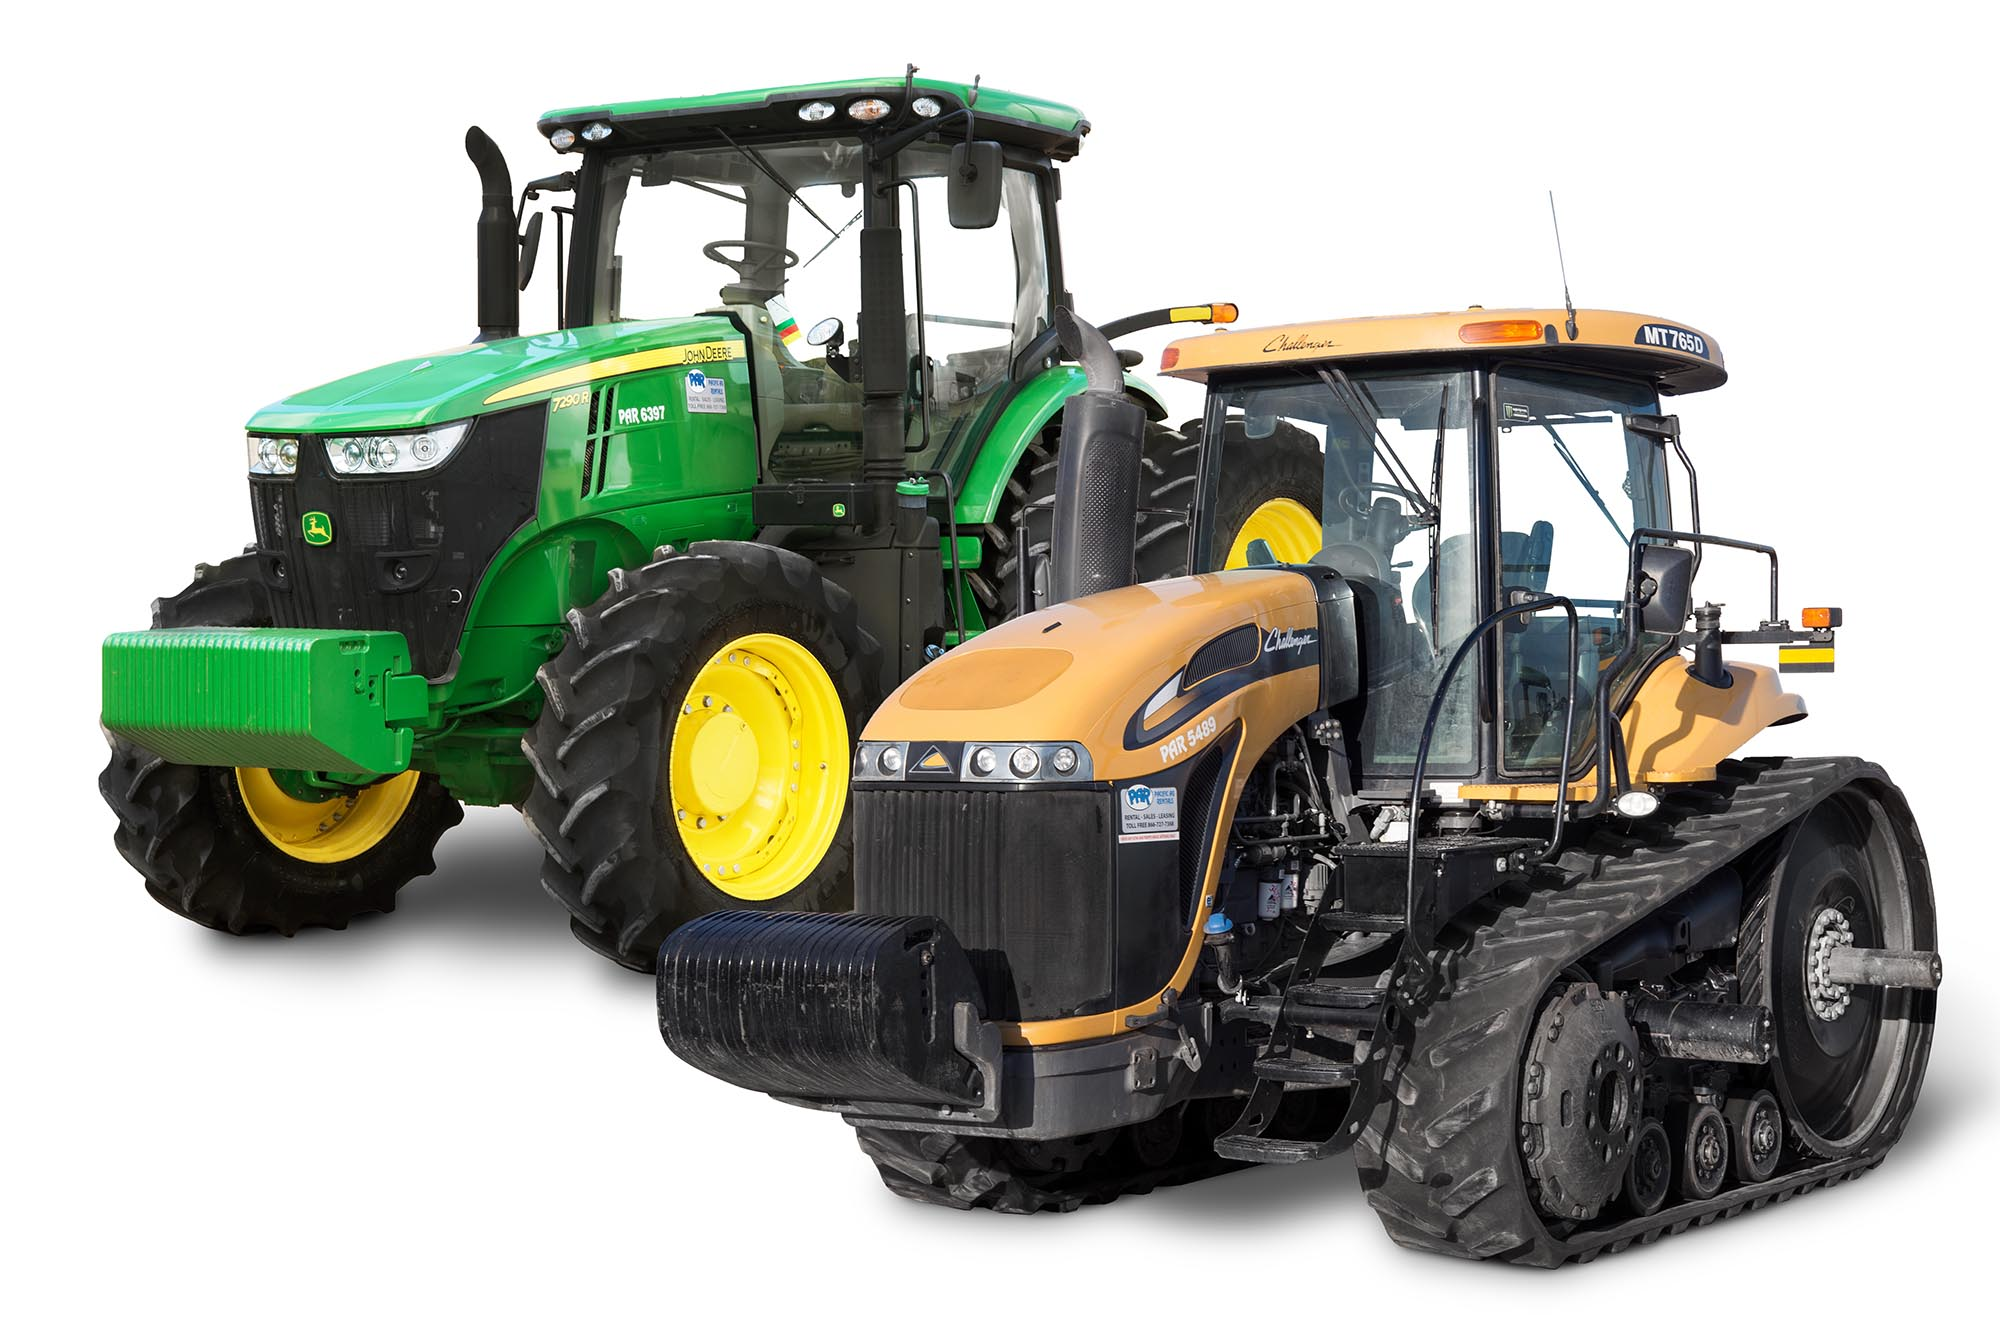 Par Tractor Rentals: Light Tillage